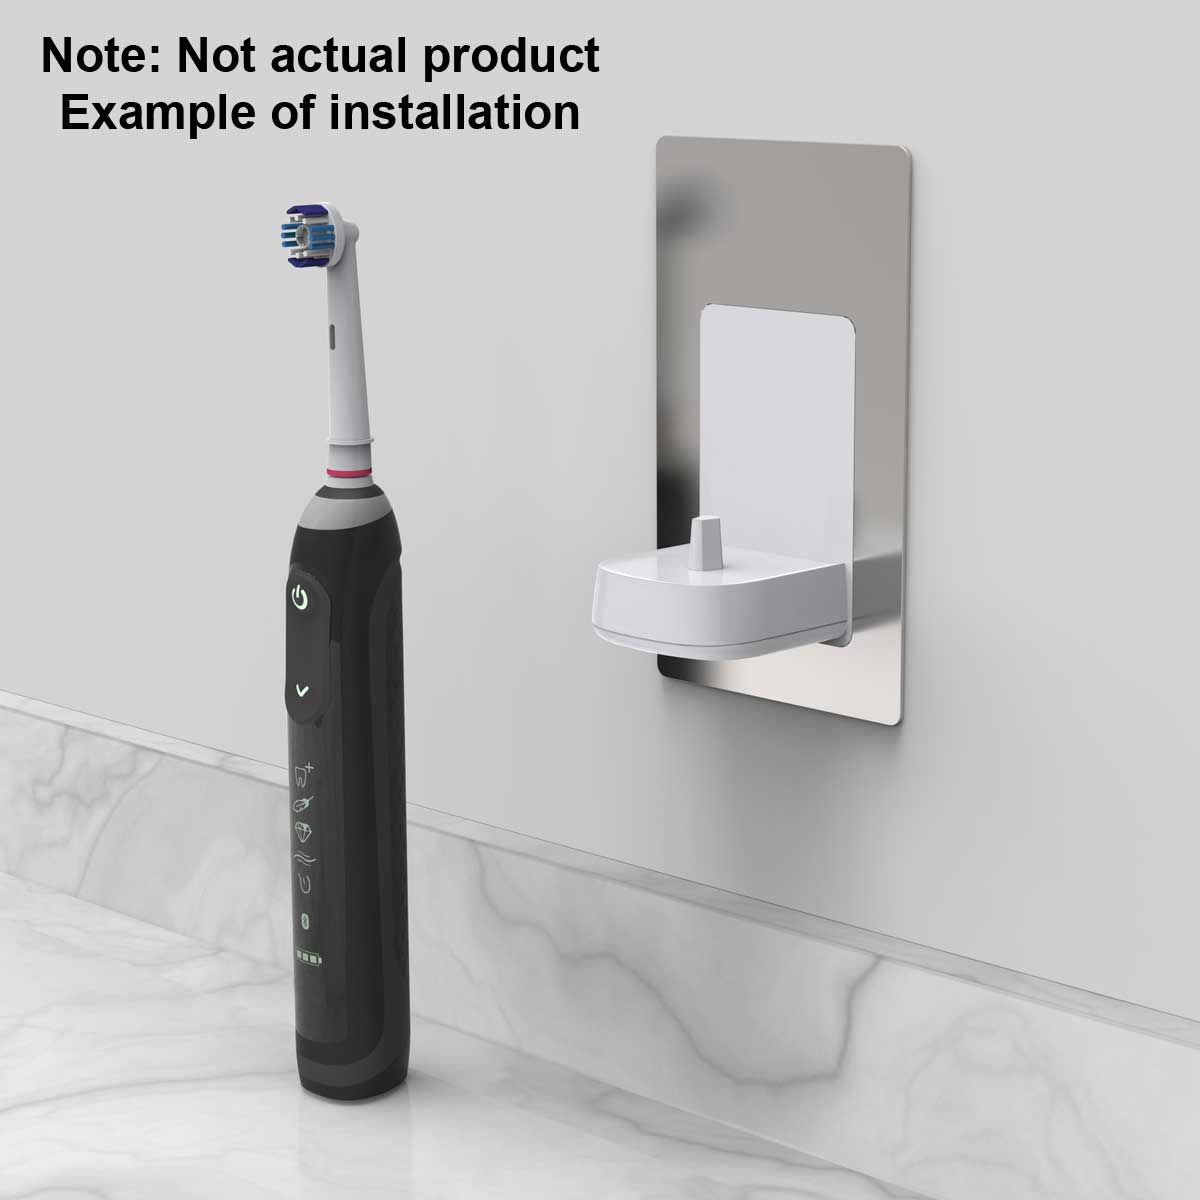 Example of a typical installation of an electric toothbrush charger